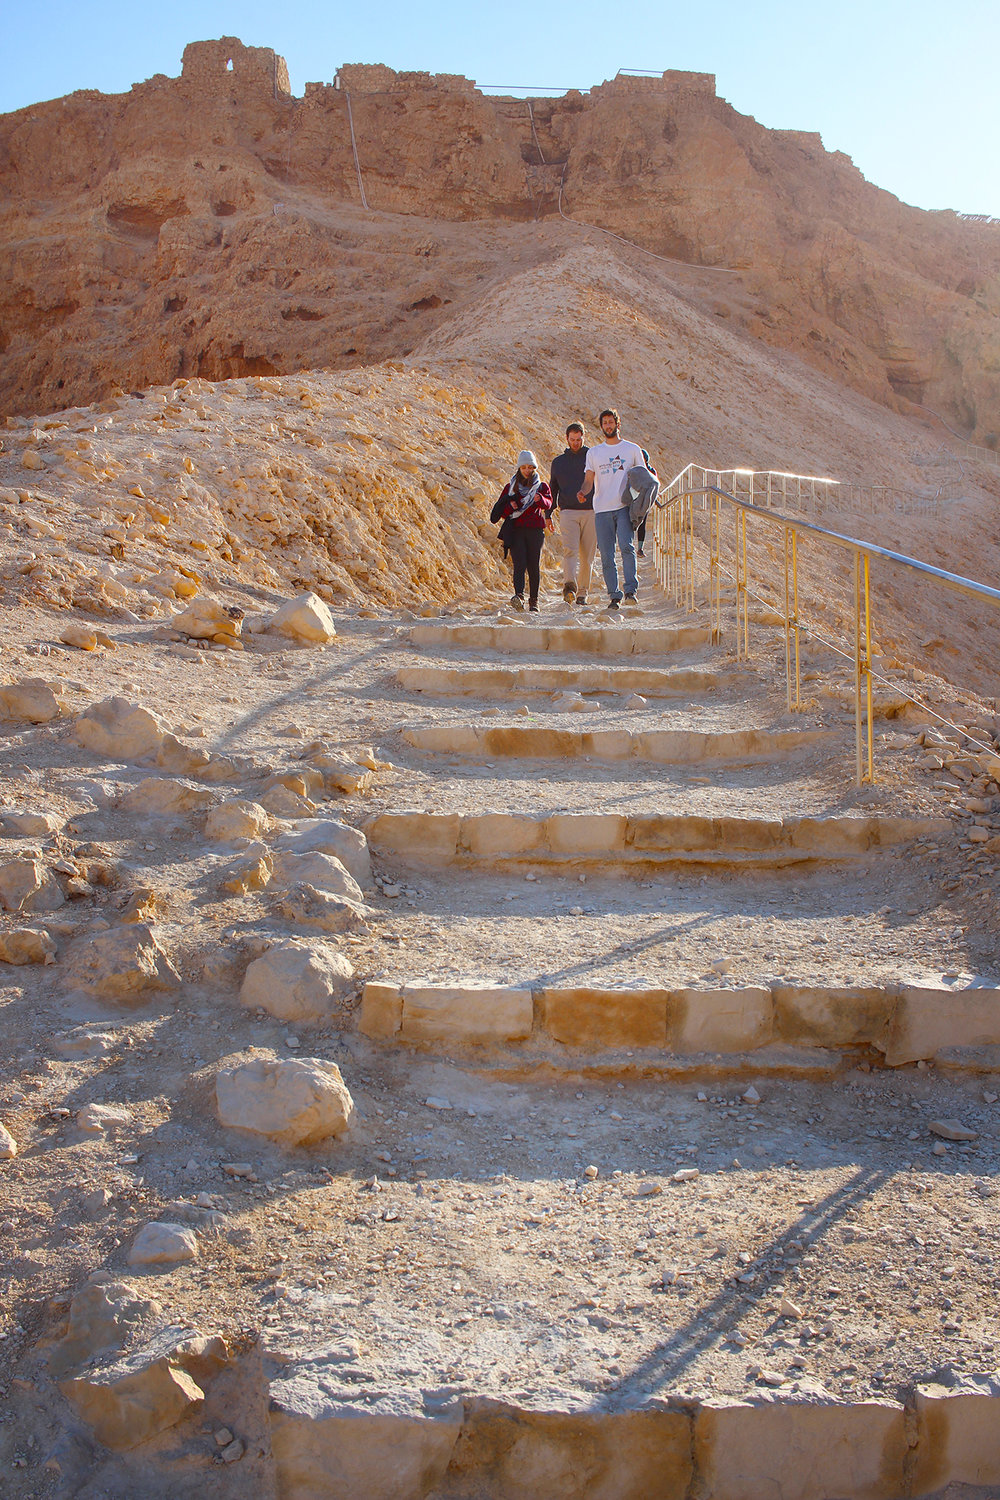 Masada in the Negev Desert, Israel, 2016.